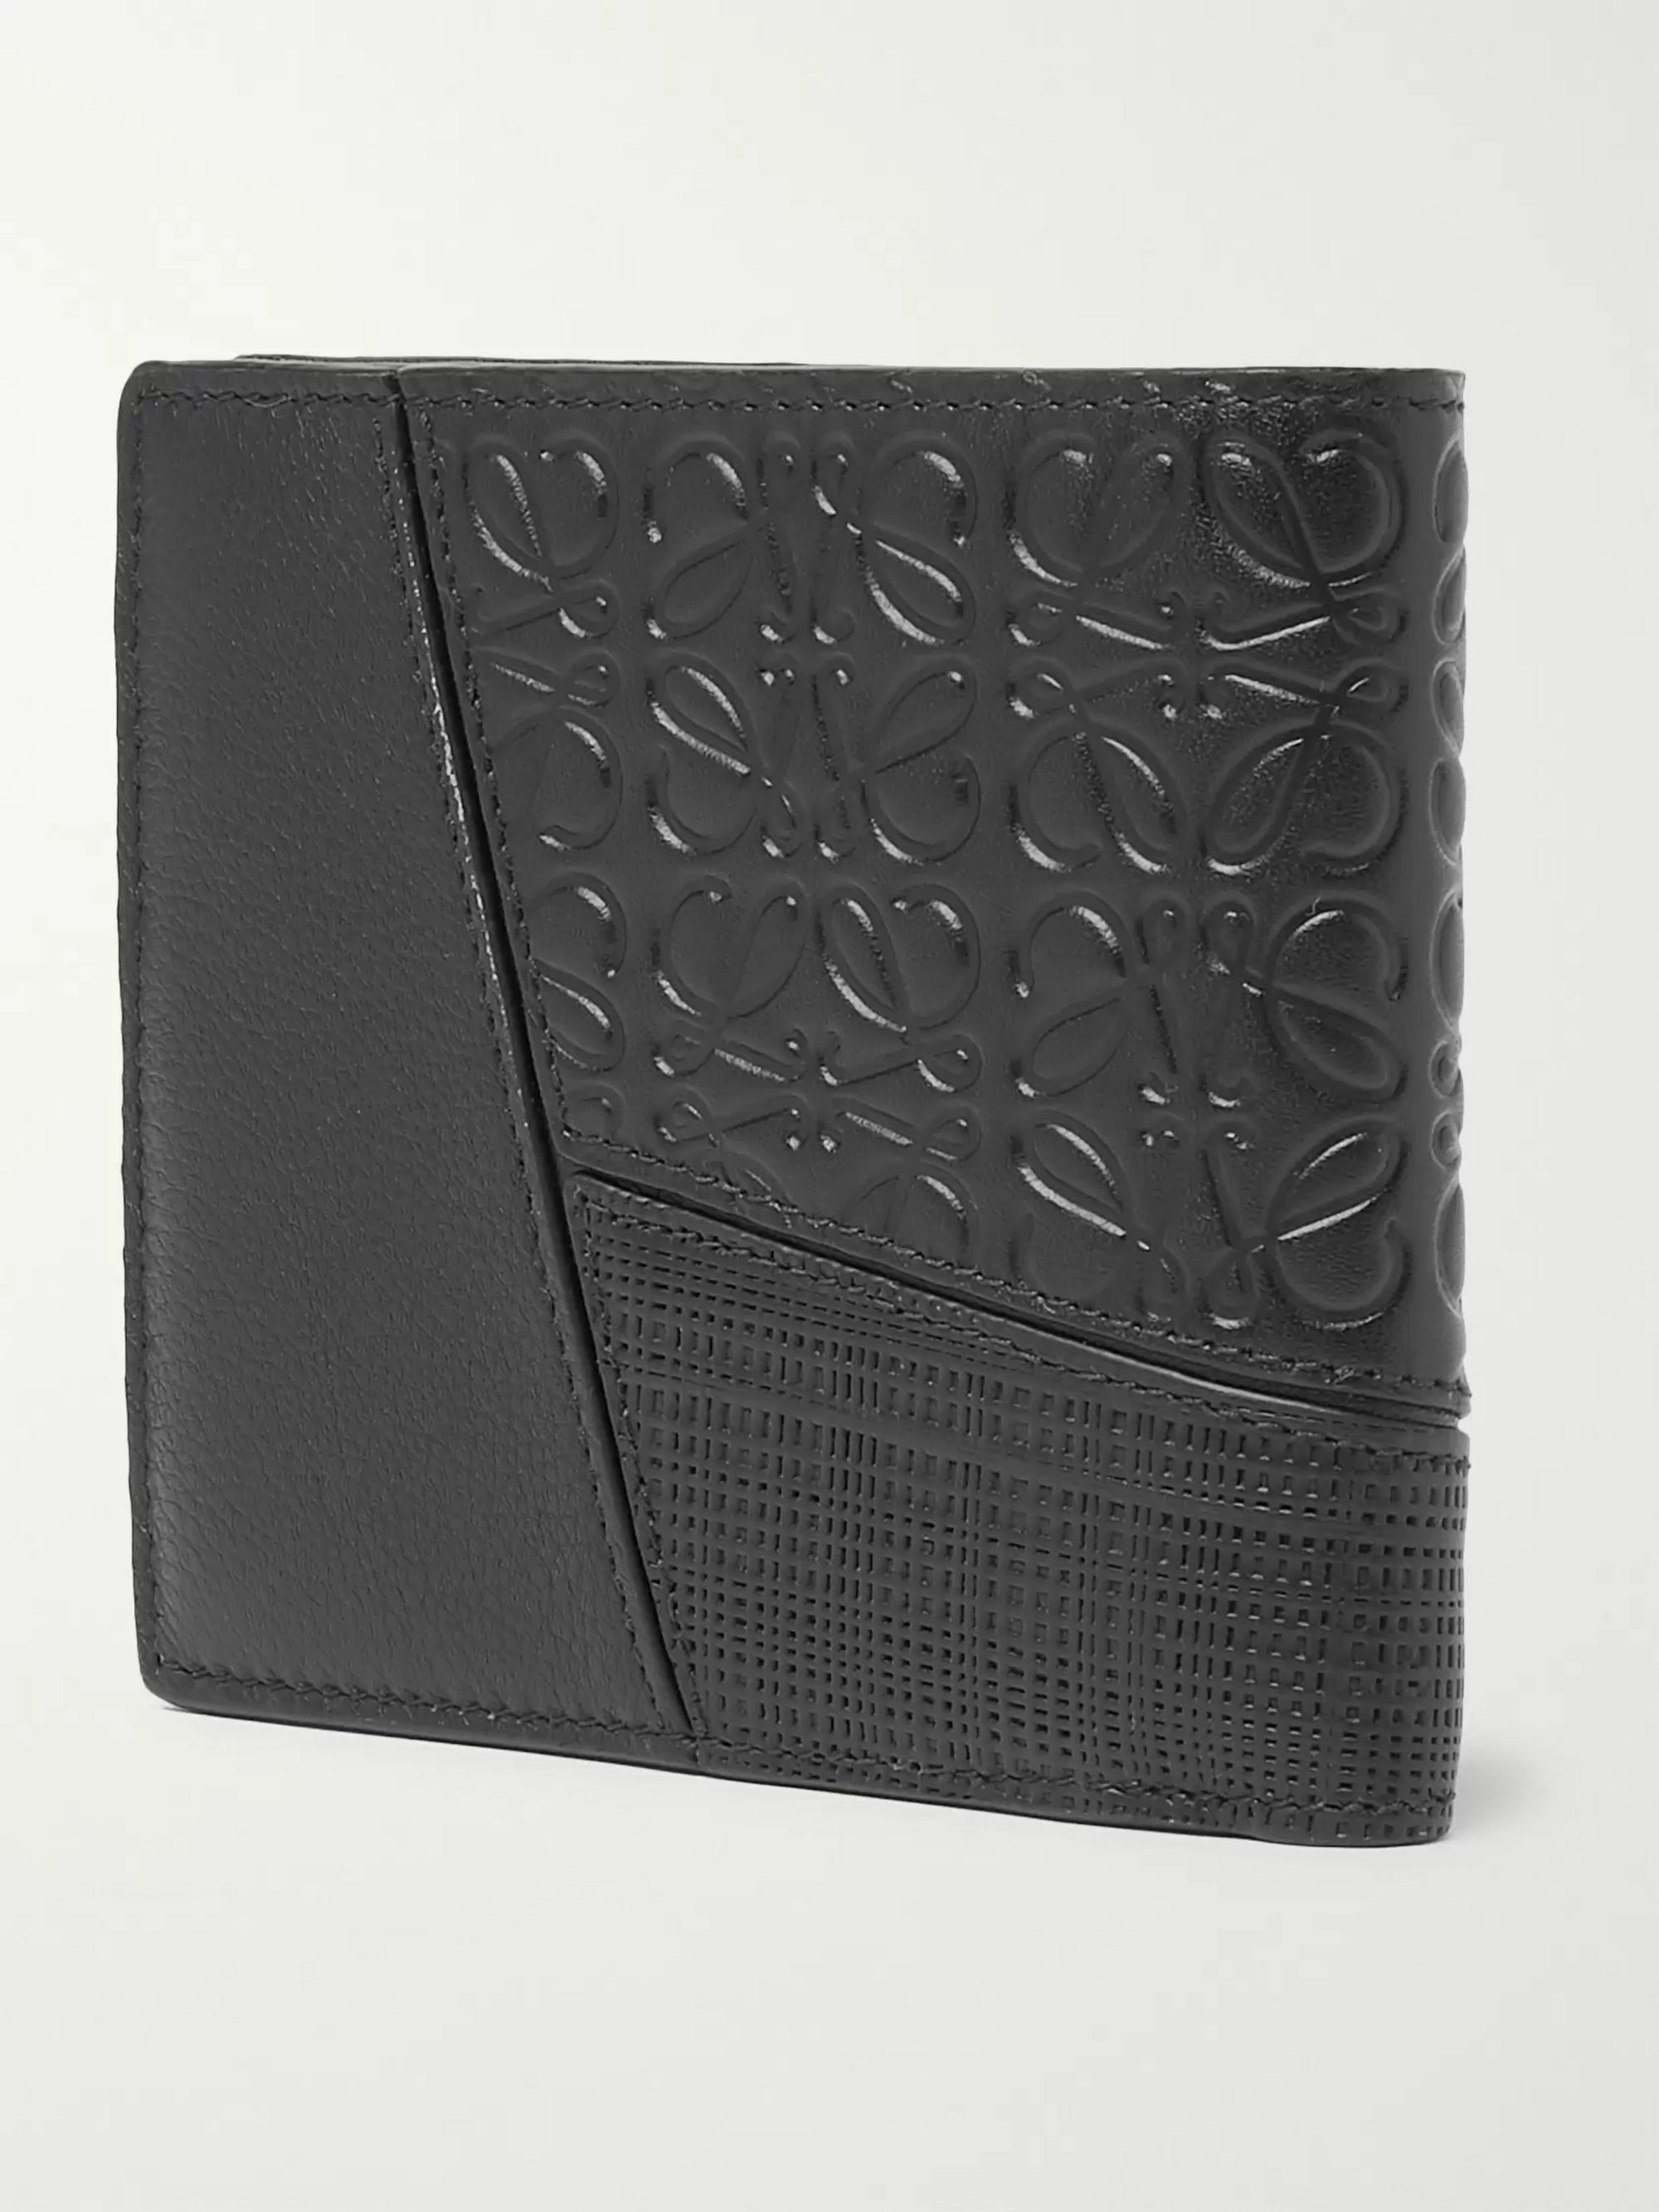 Loewe Logo-Debossed Full and Cross-Grain Leather Billfold Wallet